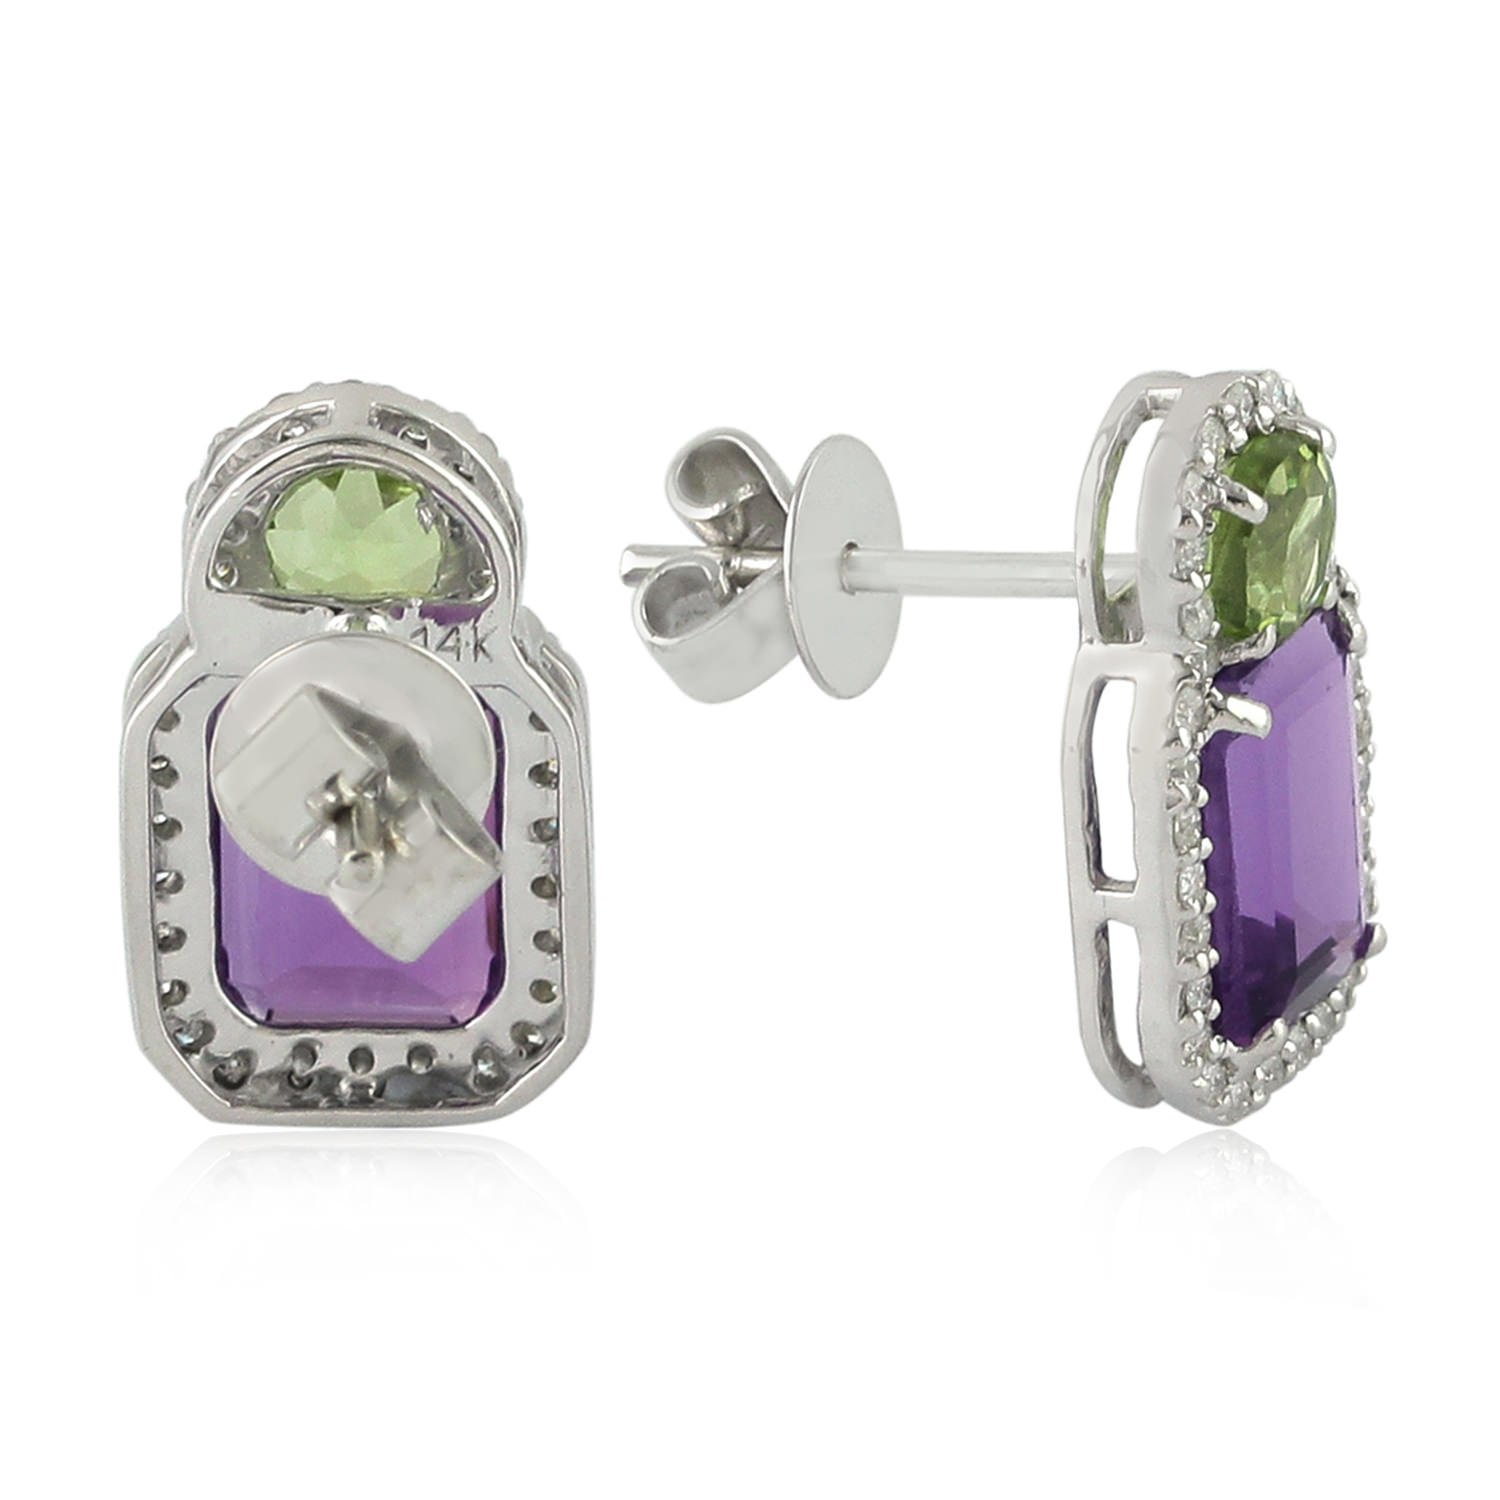 14K White Gold and Amethyst Stud Earrings Diamond Peridot Jewelry Gemco Designs OPS-16325